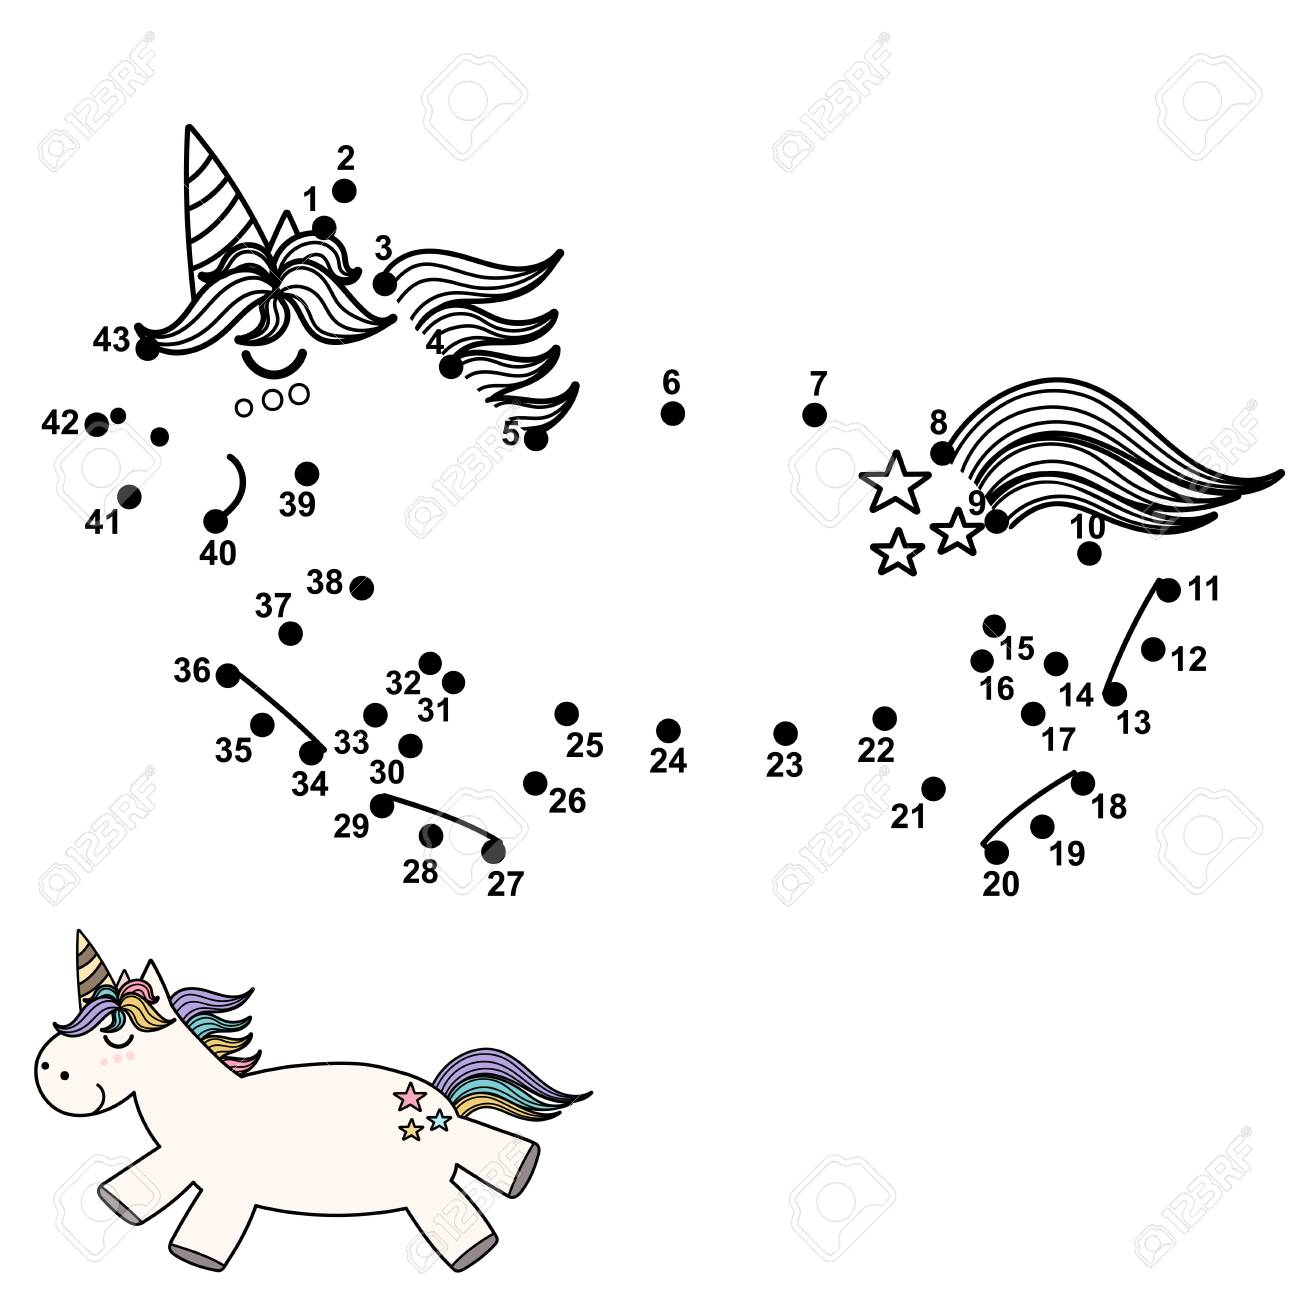 drawing game text Connect The Dots And Draw A Cute Unicorn Numbers Game For Children